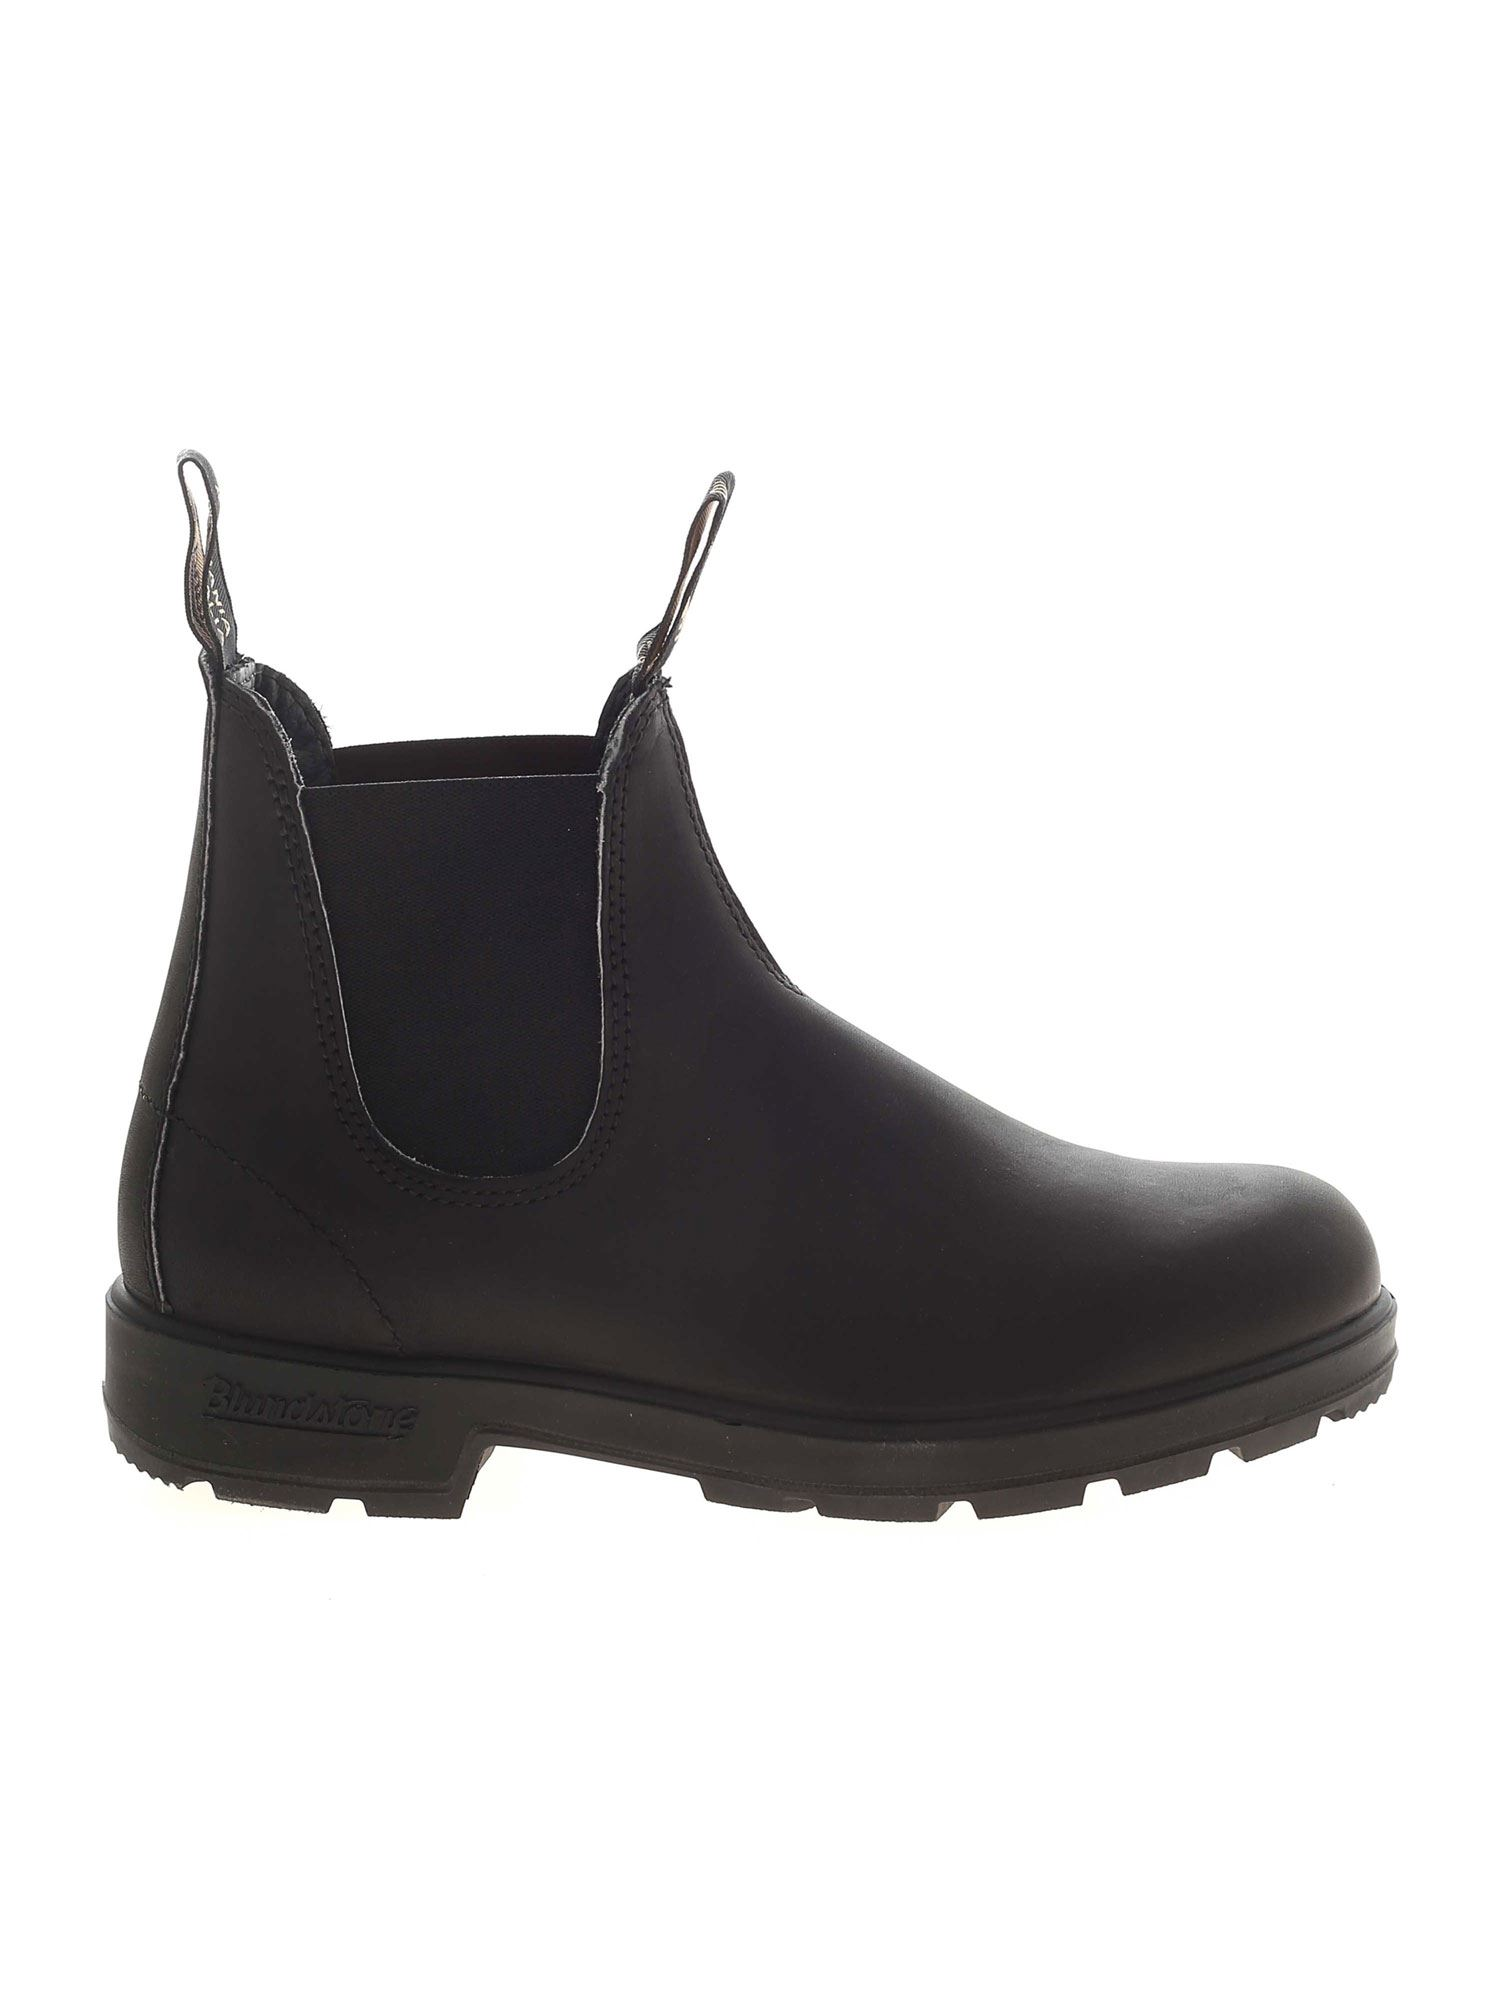 Blundstone CHELSEA BLACK ANKLE BOOTS WITH ELASTICATED INSERTS